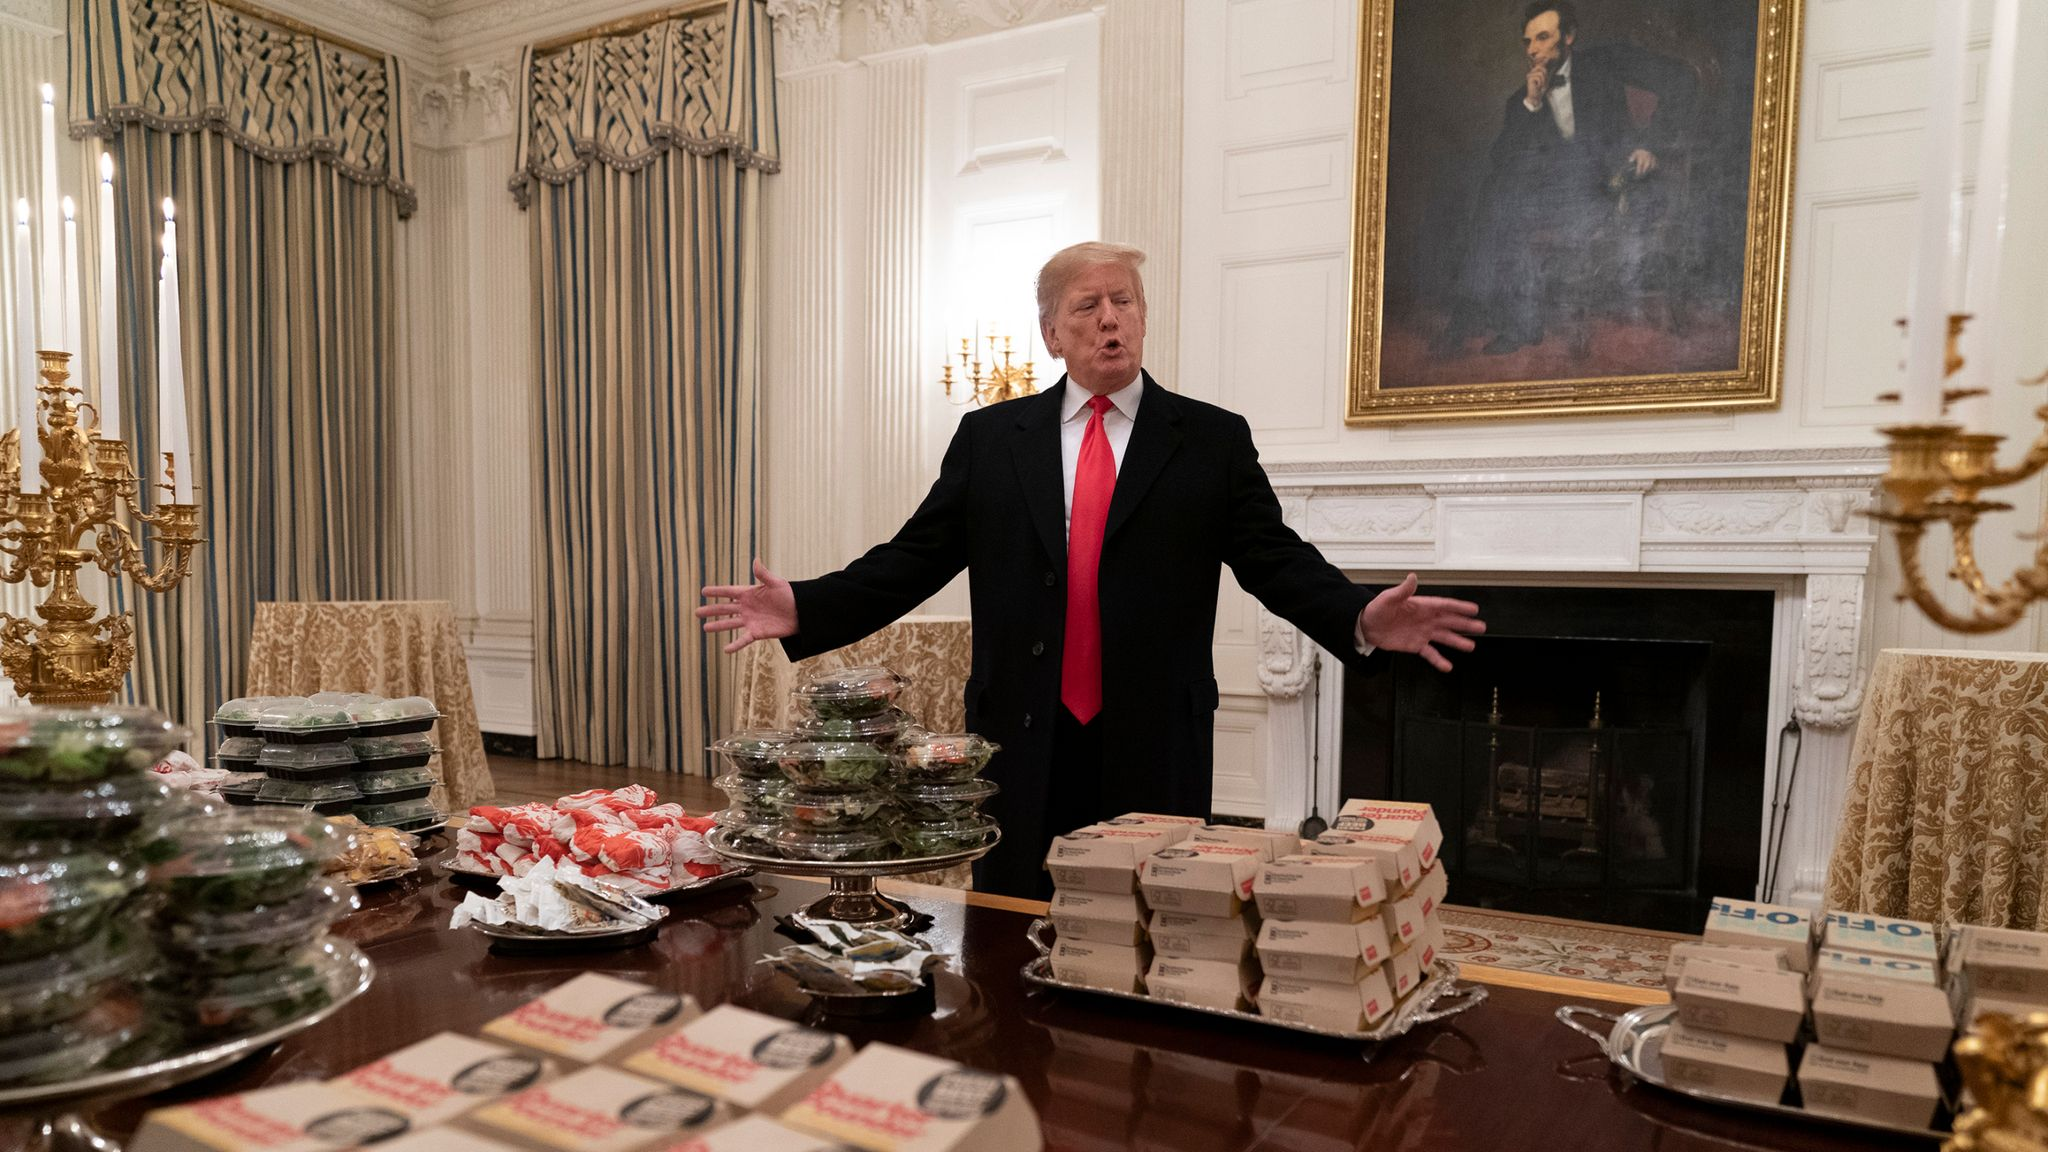 Government Shutdown Leaves White House Guests Dining On Take